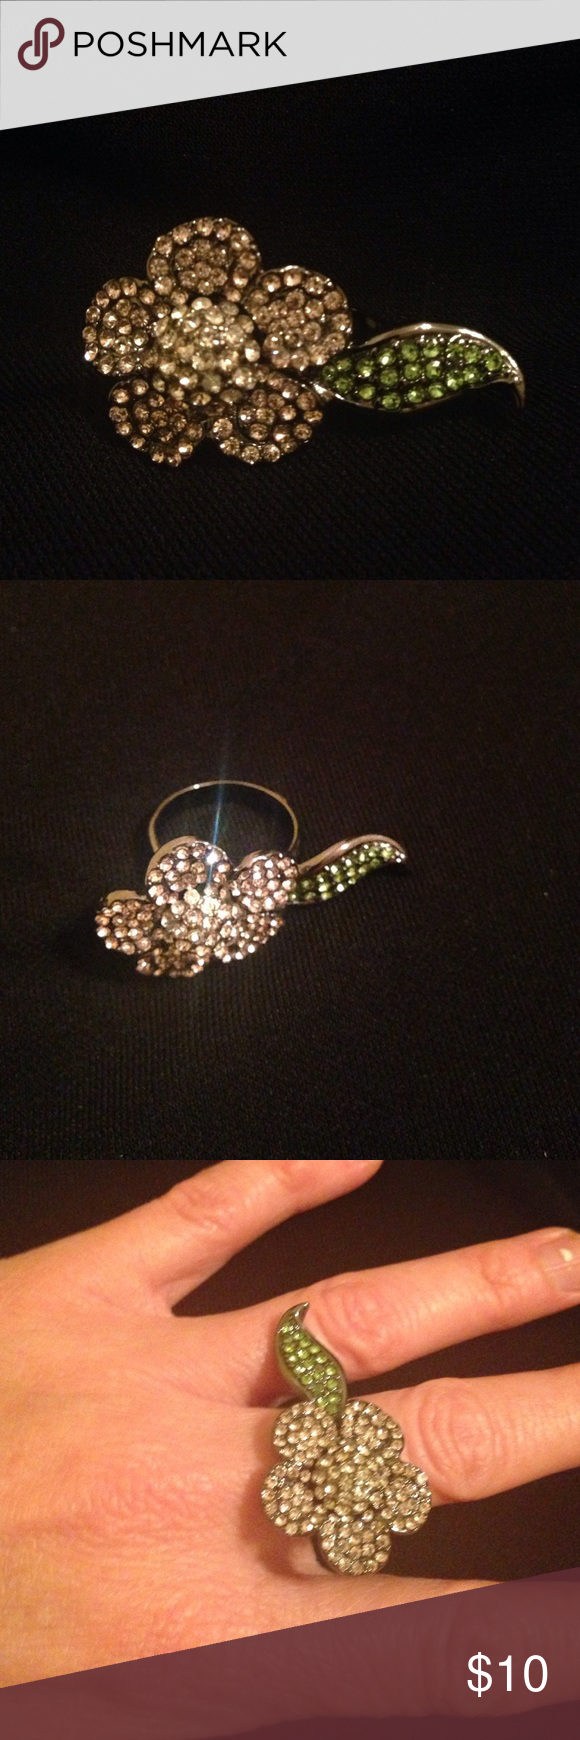 Guess pink sparkly flower 🌺 ring! Guess pink sparkly flower 🌺 ring with green leaf 🍃 that crosses over the other finger. Pink rhinestone petals and silver rhinestones inside of flower. Leaf has green rhinestones. Gunmetal colored band. Guess Jewelry Rings